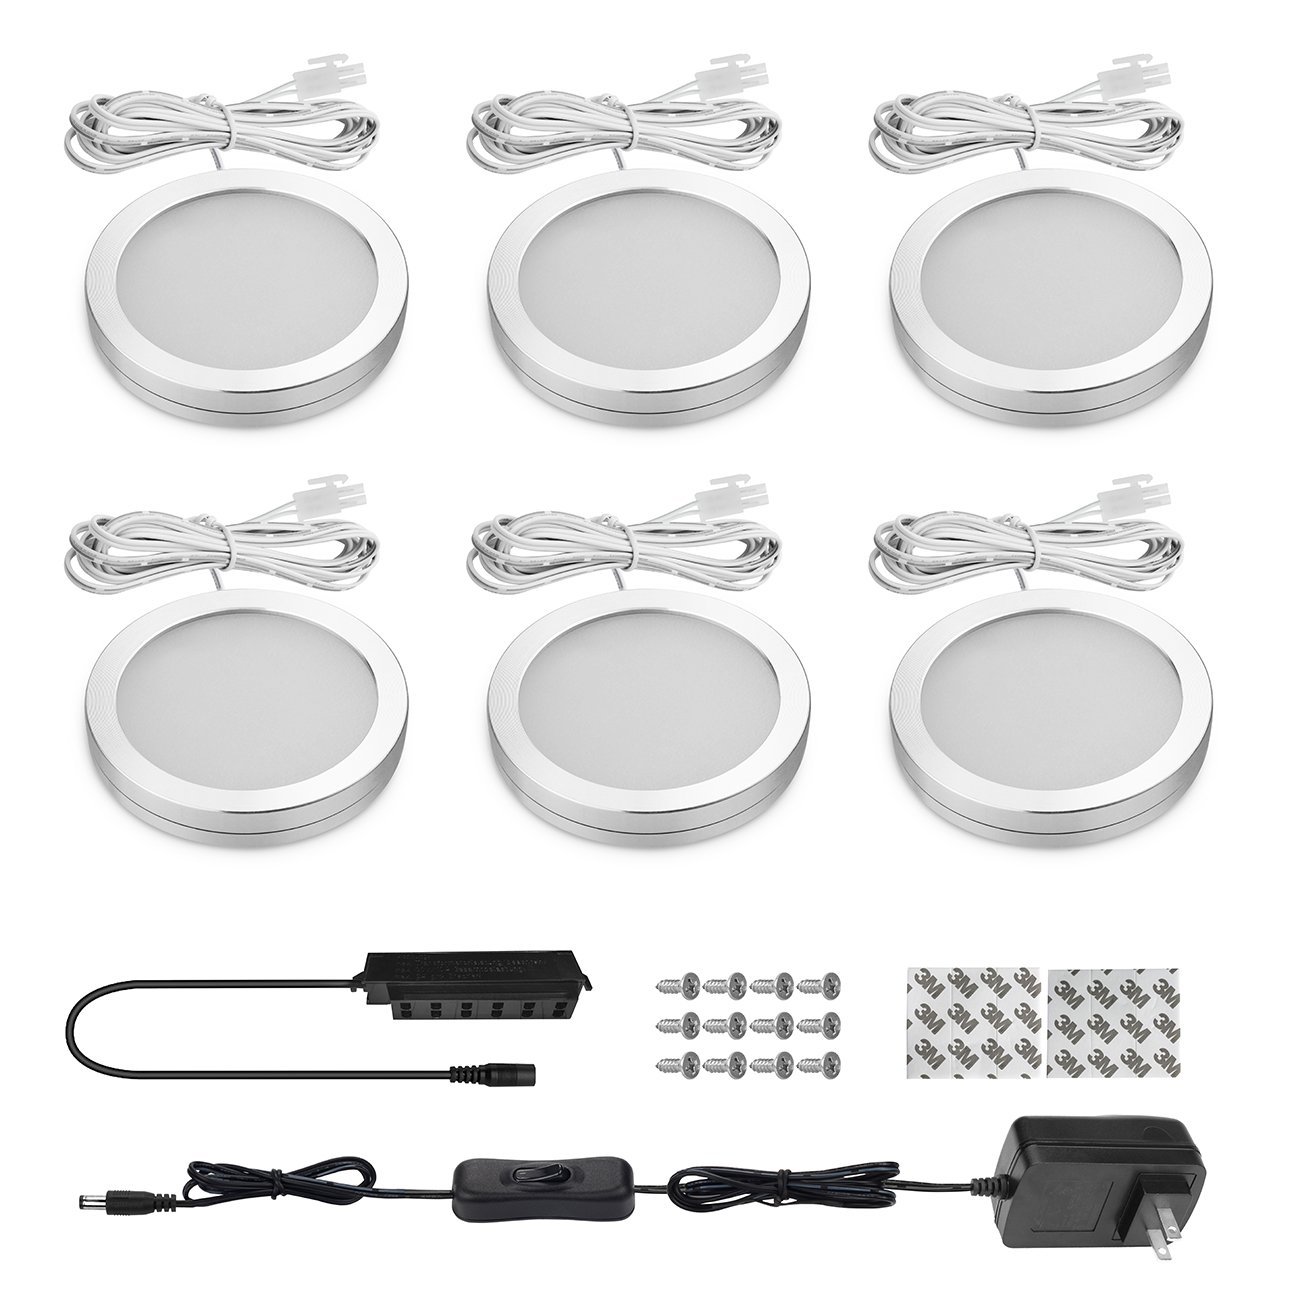 Shine HAI LED Under Cabinet Lighting Kit, LED Puck Light, 1140 Lumens 5000K Daylight White, All Accessories Included, Kitchen, Closet Lights, Set of 6